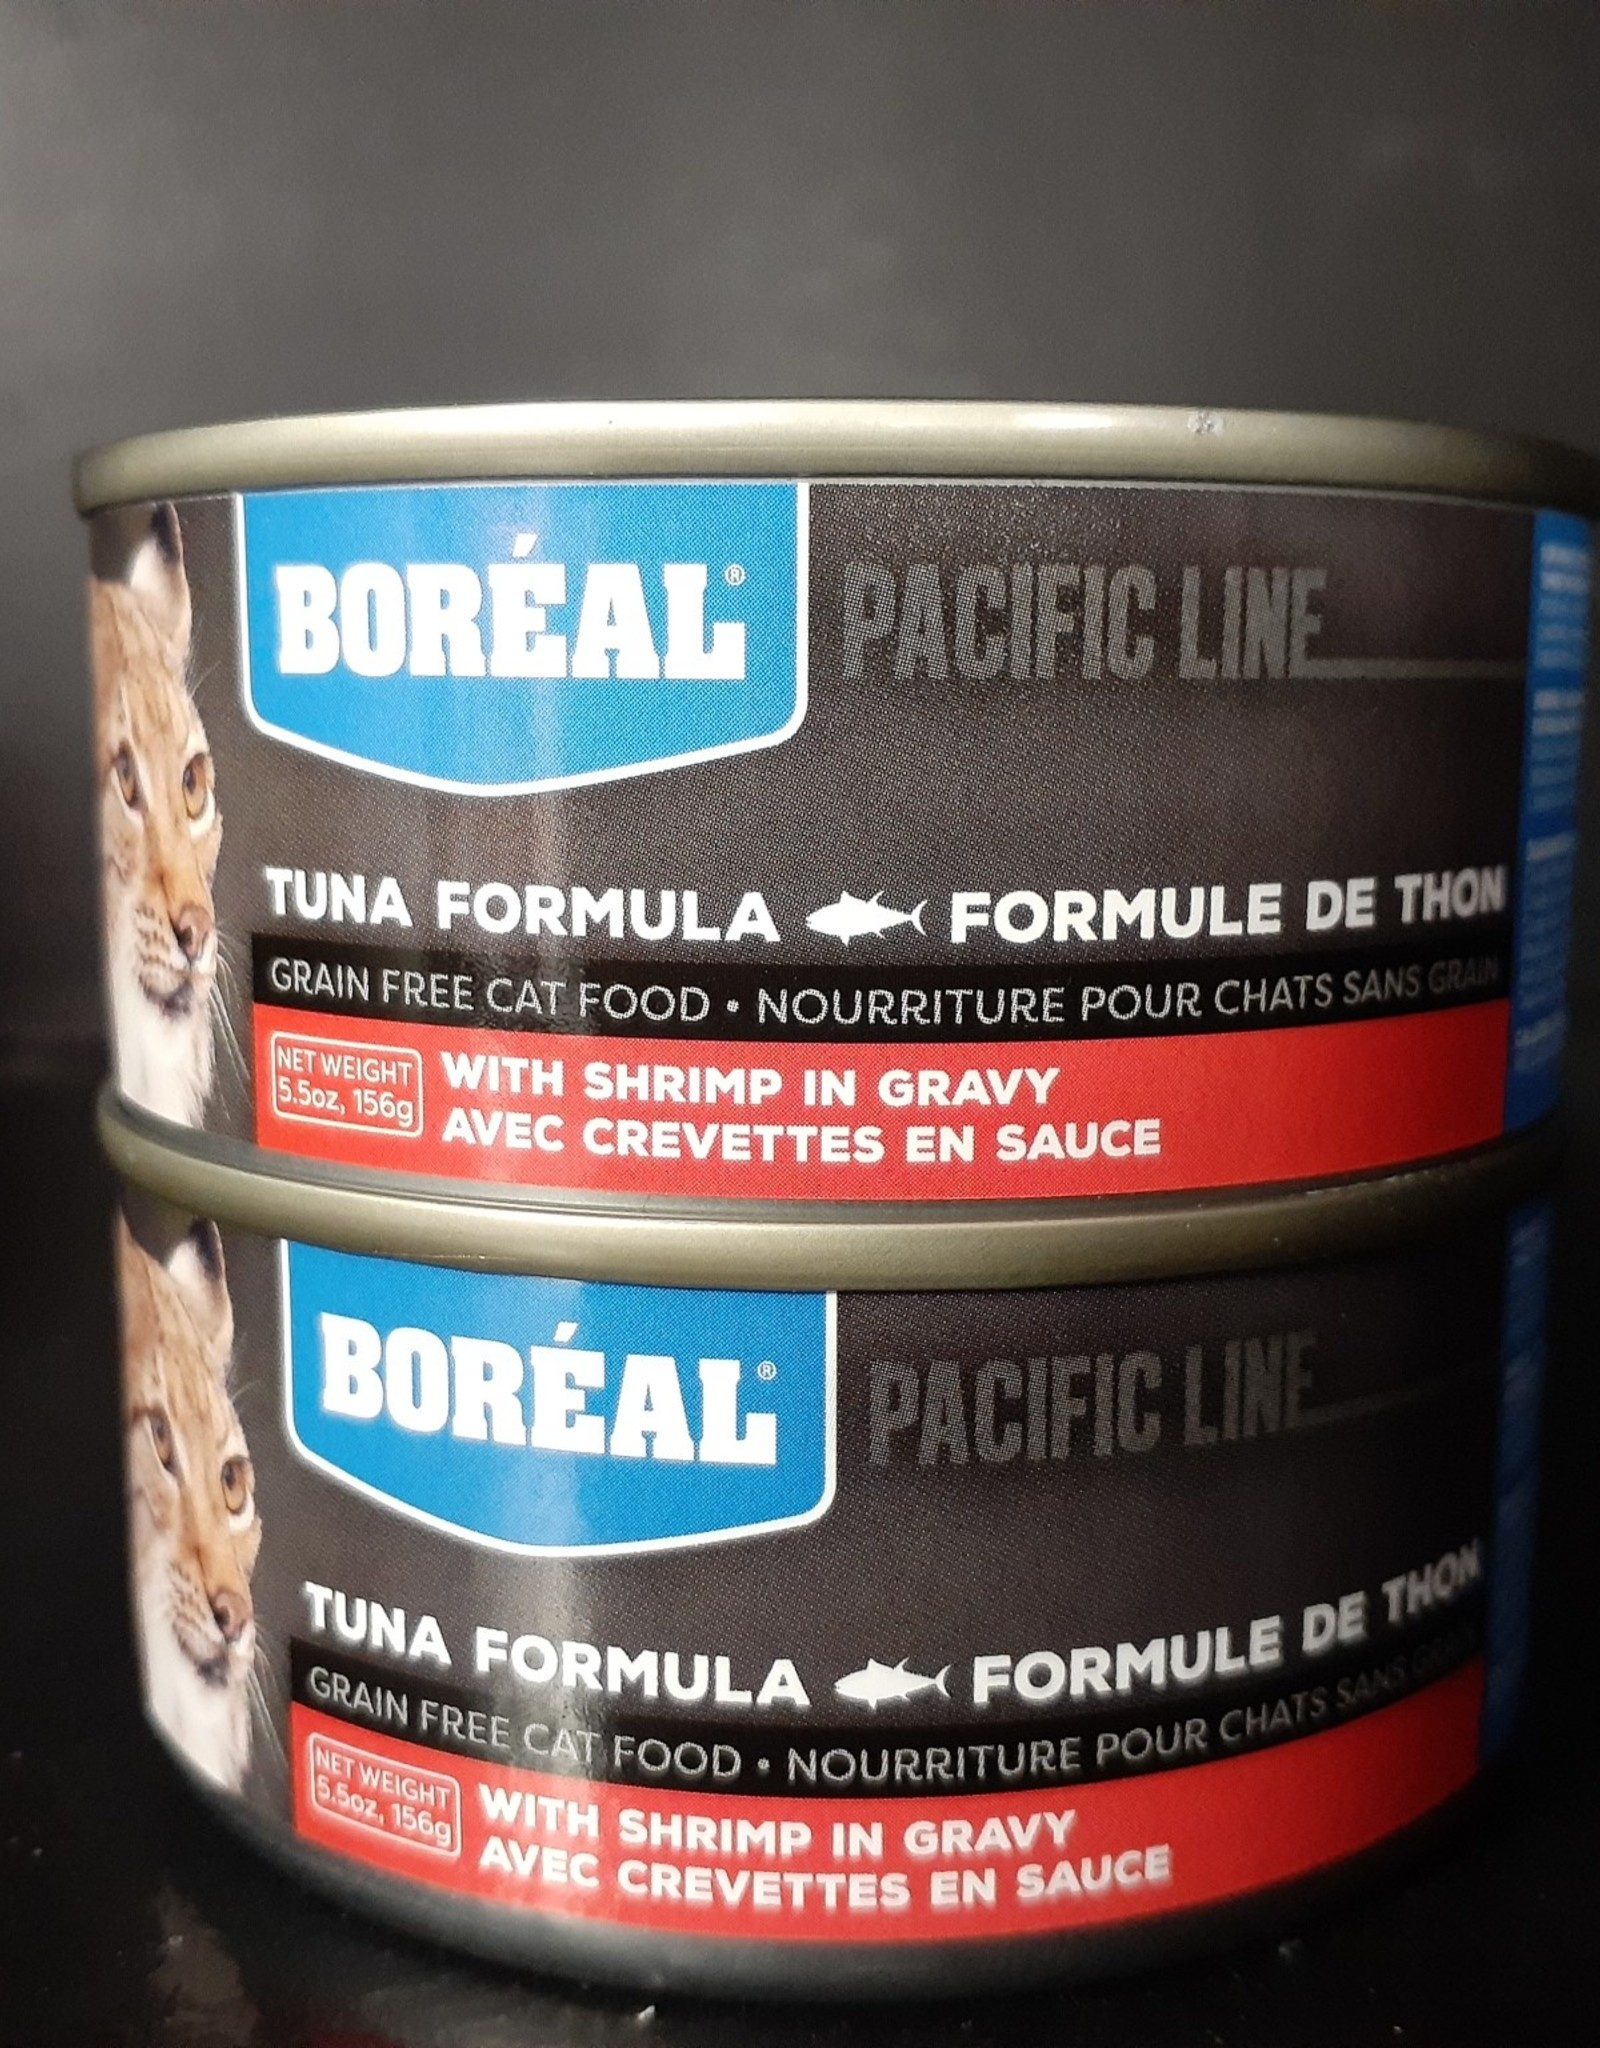 boreal boreal tuna with shrimp 5.5 oz 156gm